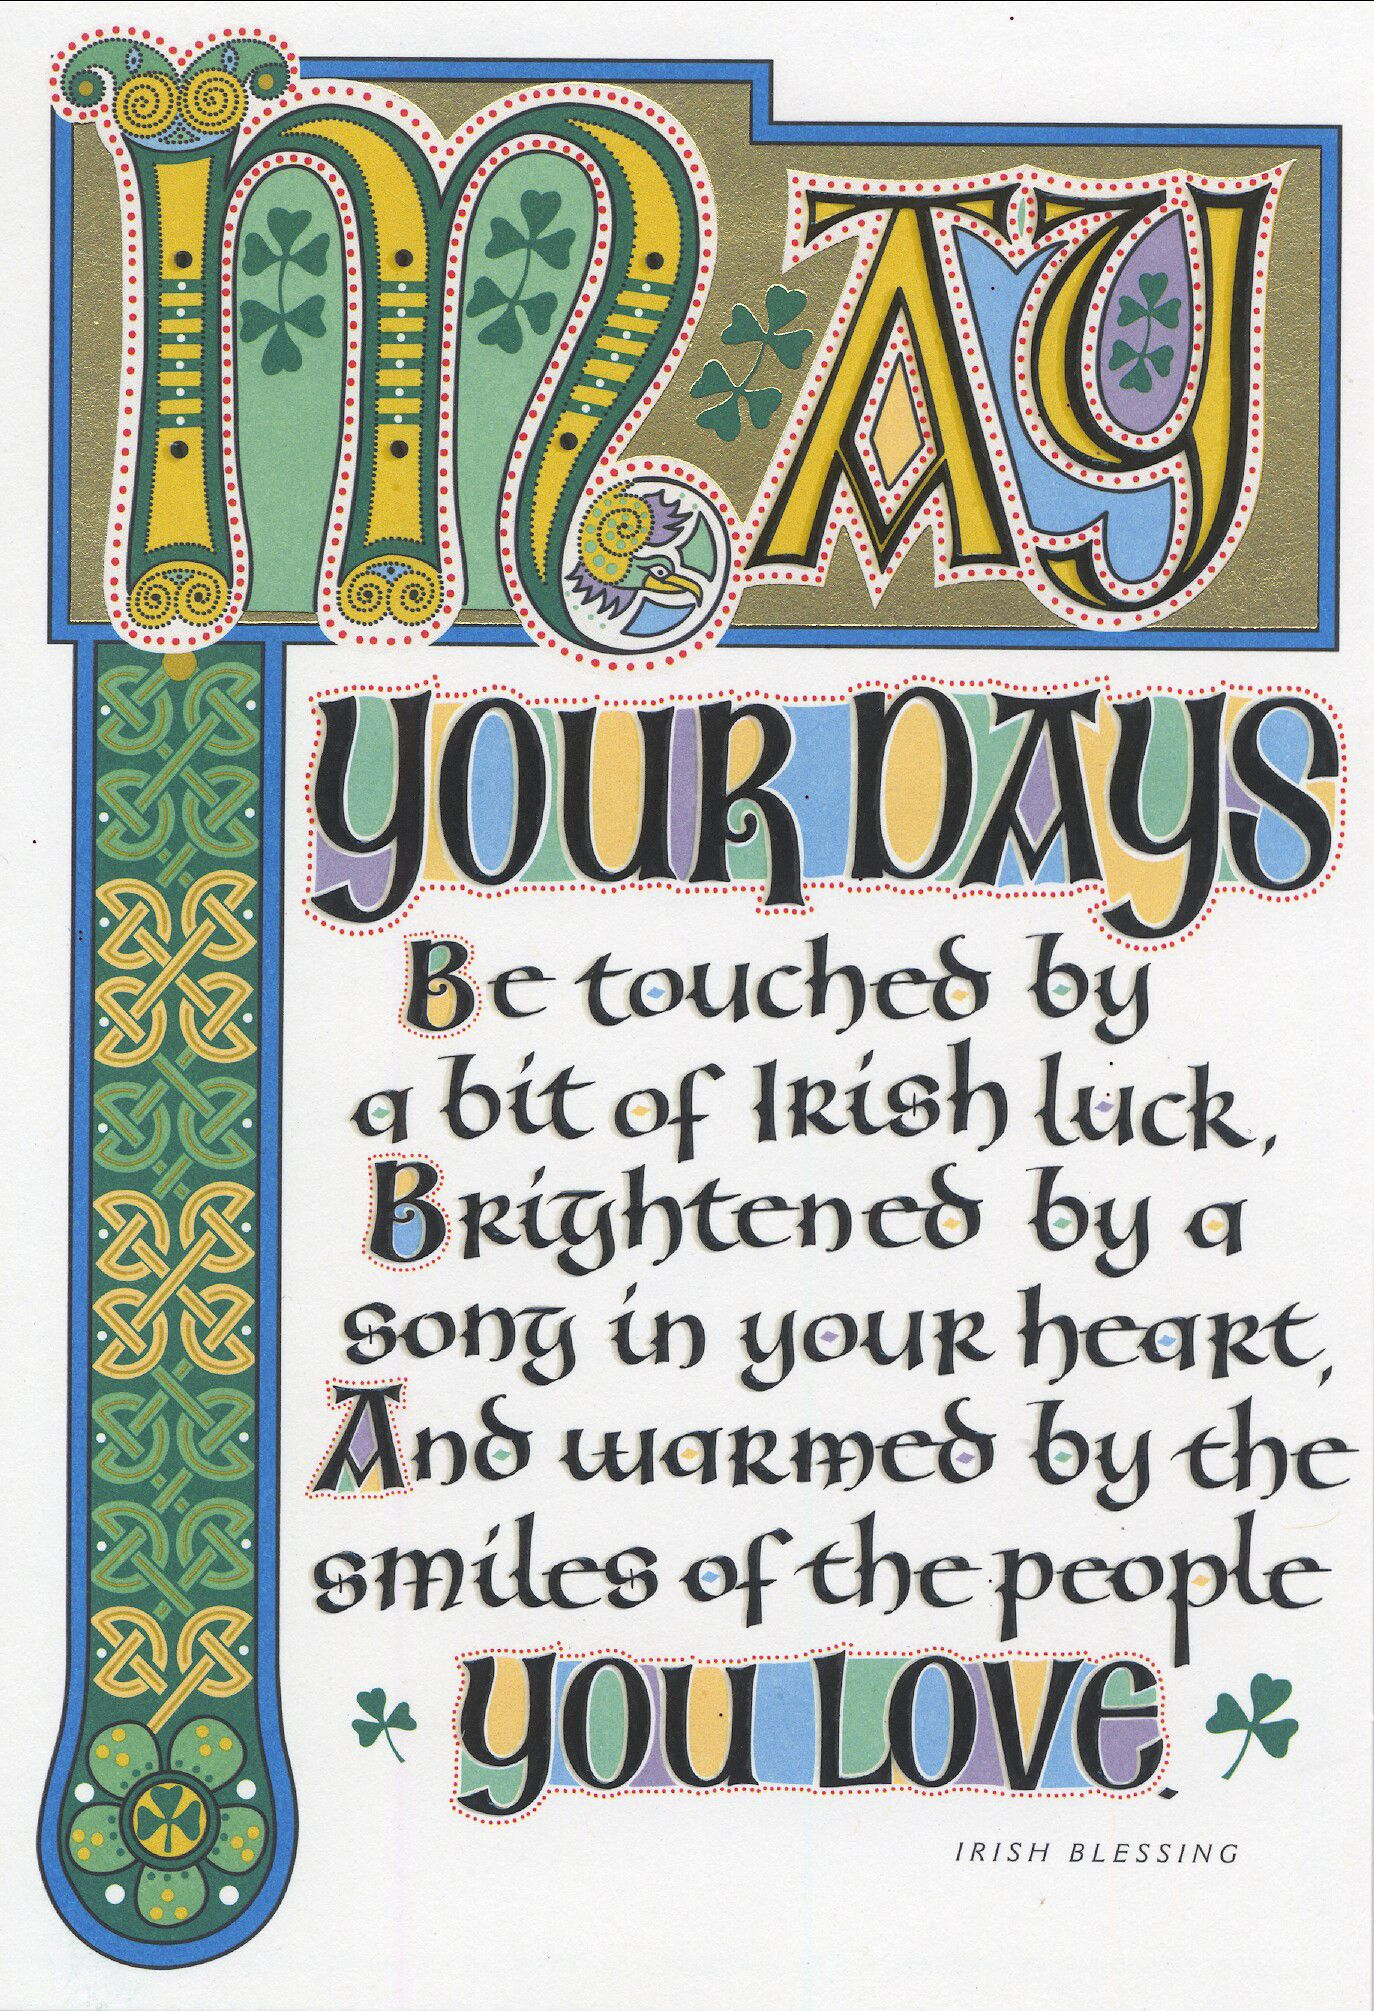 Share a traditional Irish blessing. St. Patrick's Day